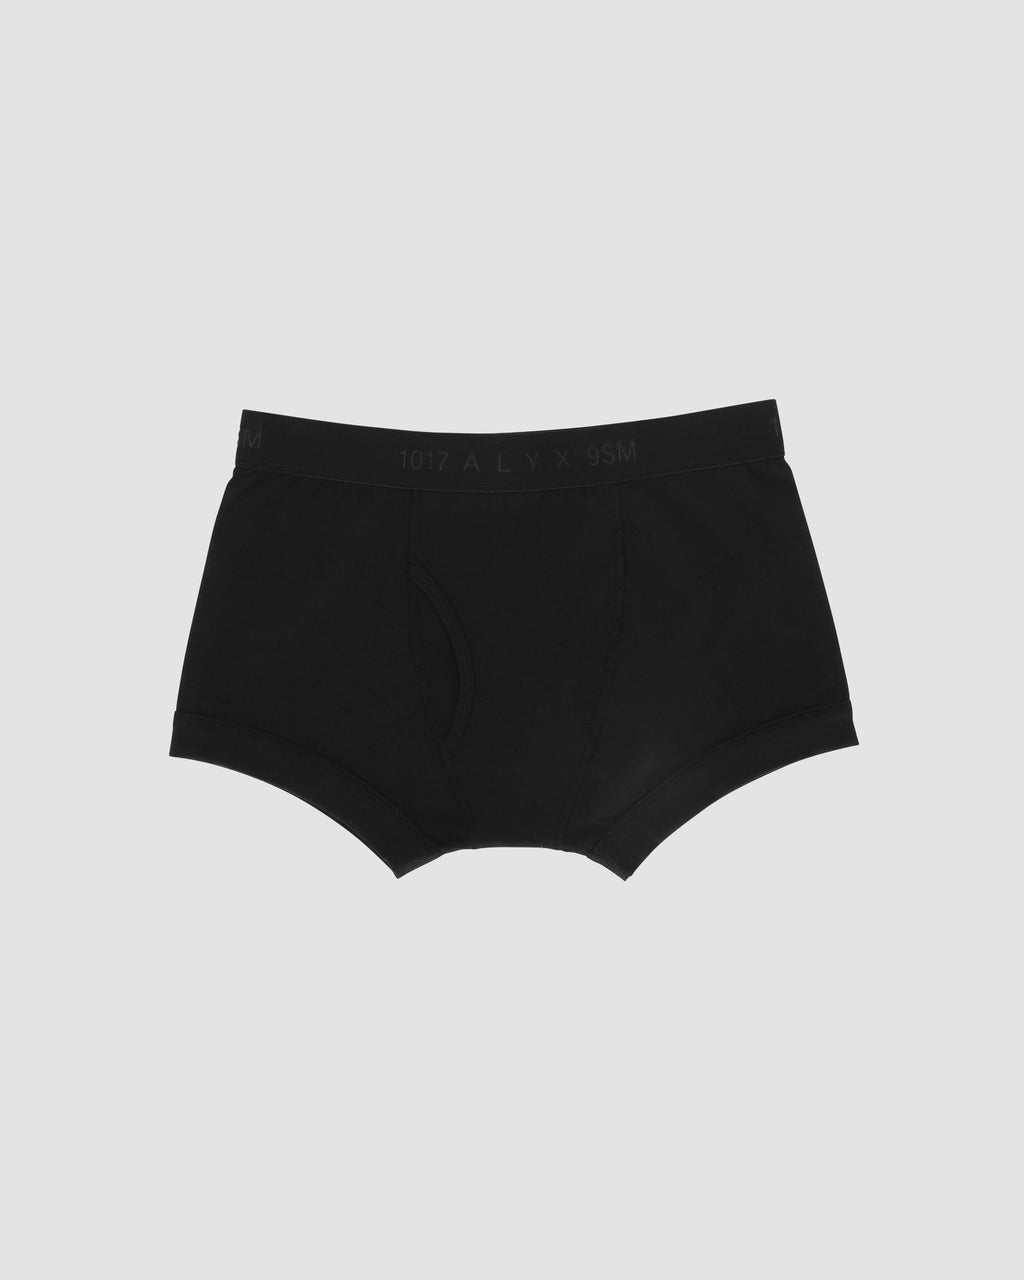 1017 ALYX 9SM | 3 PACK BOXER | Underwear | Black, Man, S19, Visual